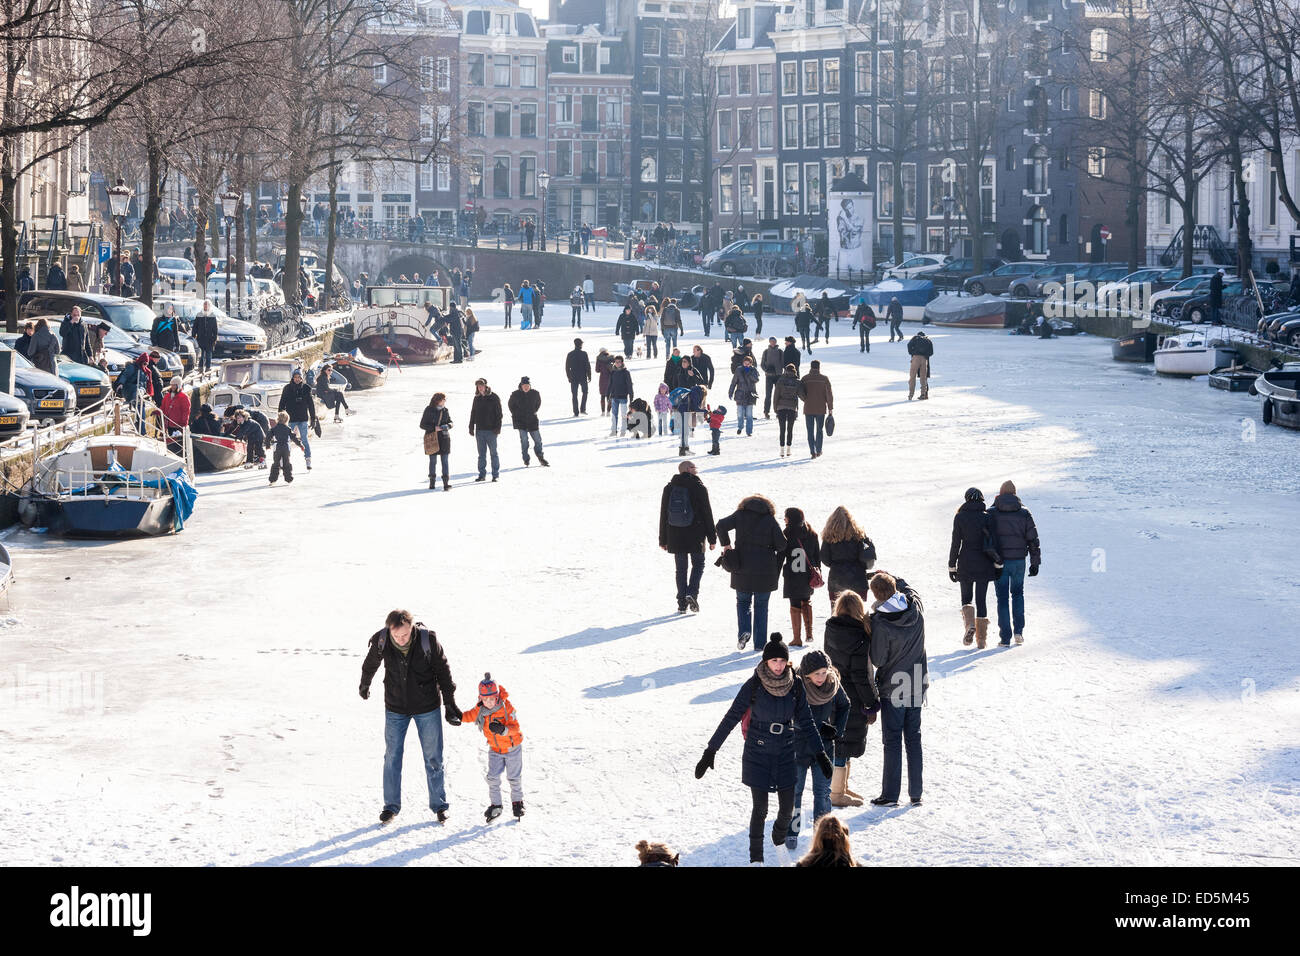 Amsterdam Ice Skating on a frozen Canal in winter. Keizersgracht Canal. - Stock Image